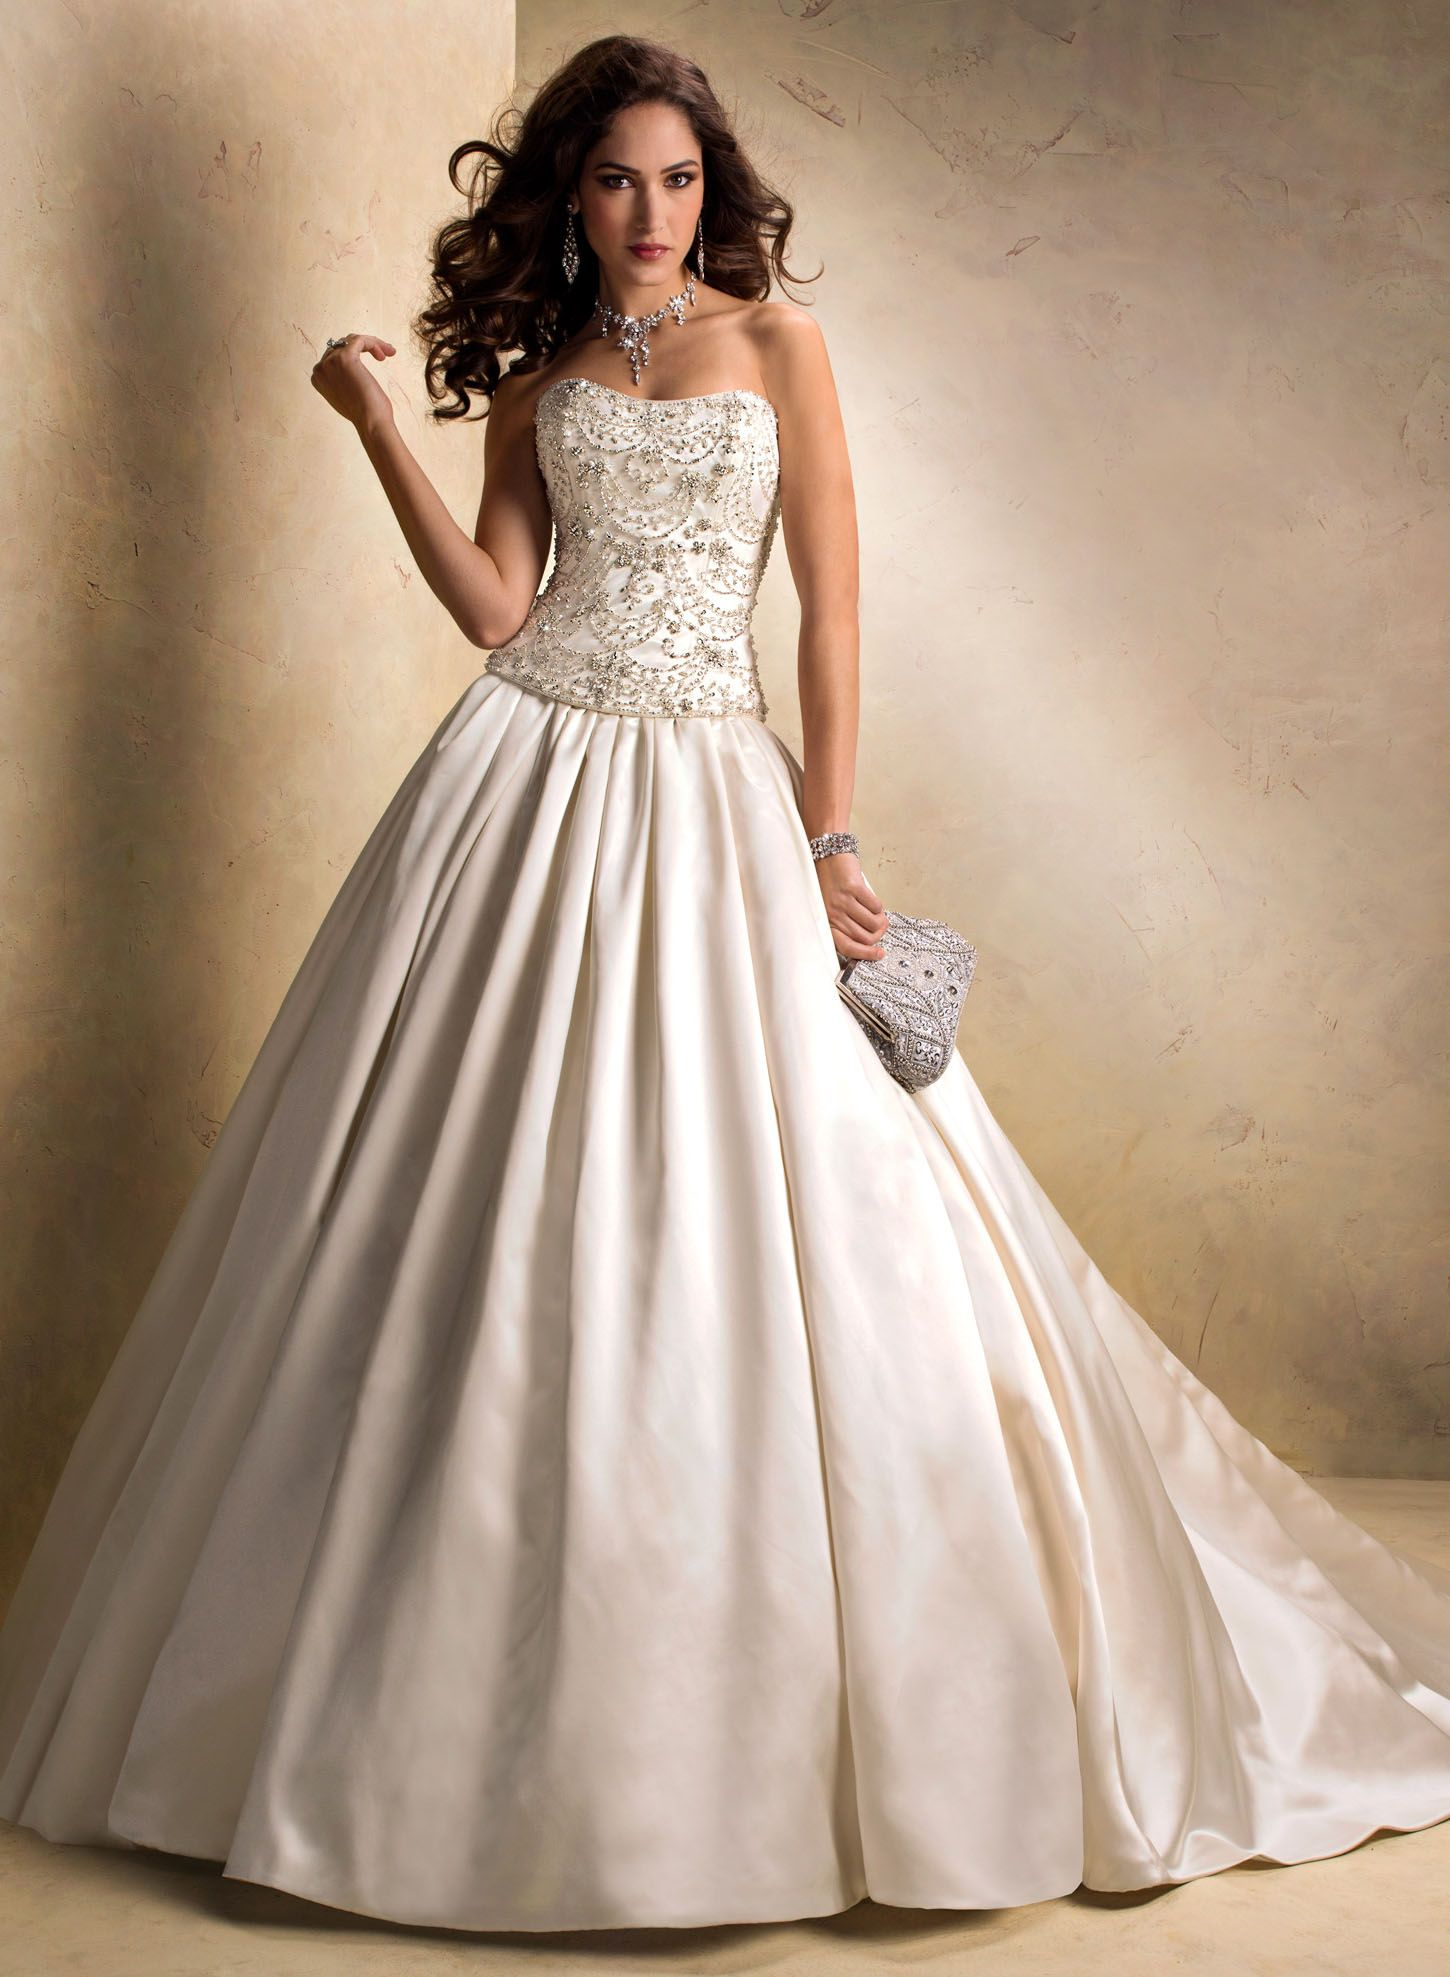 Bridal Gowns Consignment : By full circle wedding consignment on gowns in store